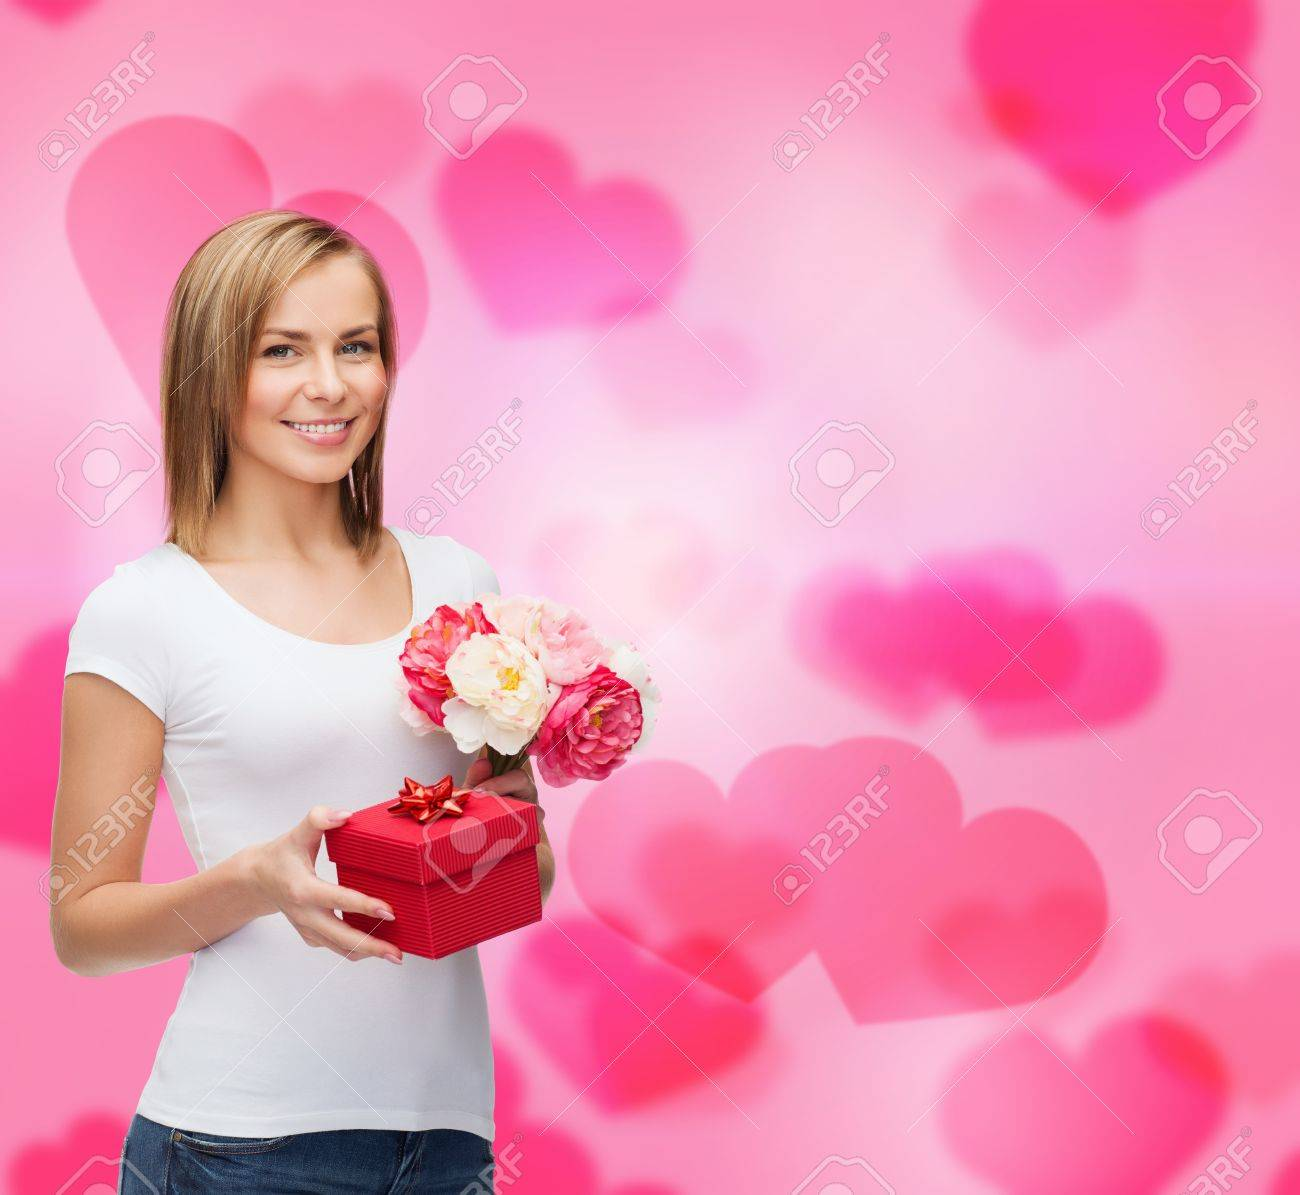 holidays, love and flowers concept - young woman with bouquet of flowers and red gift box Stock Photo - 25509126